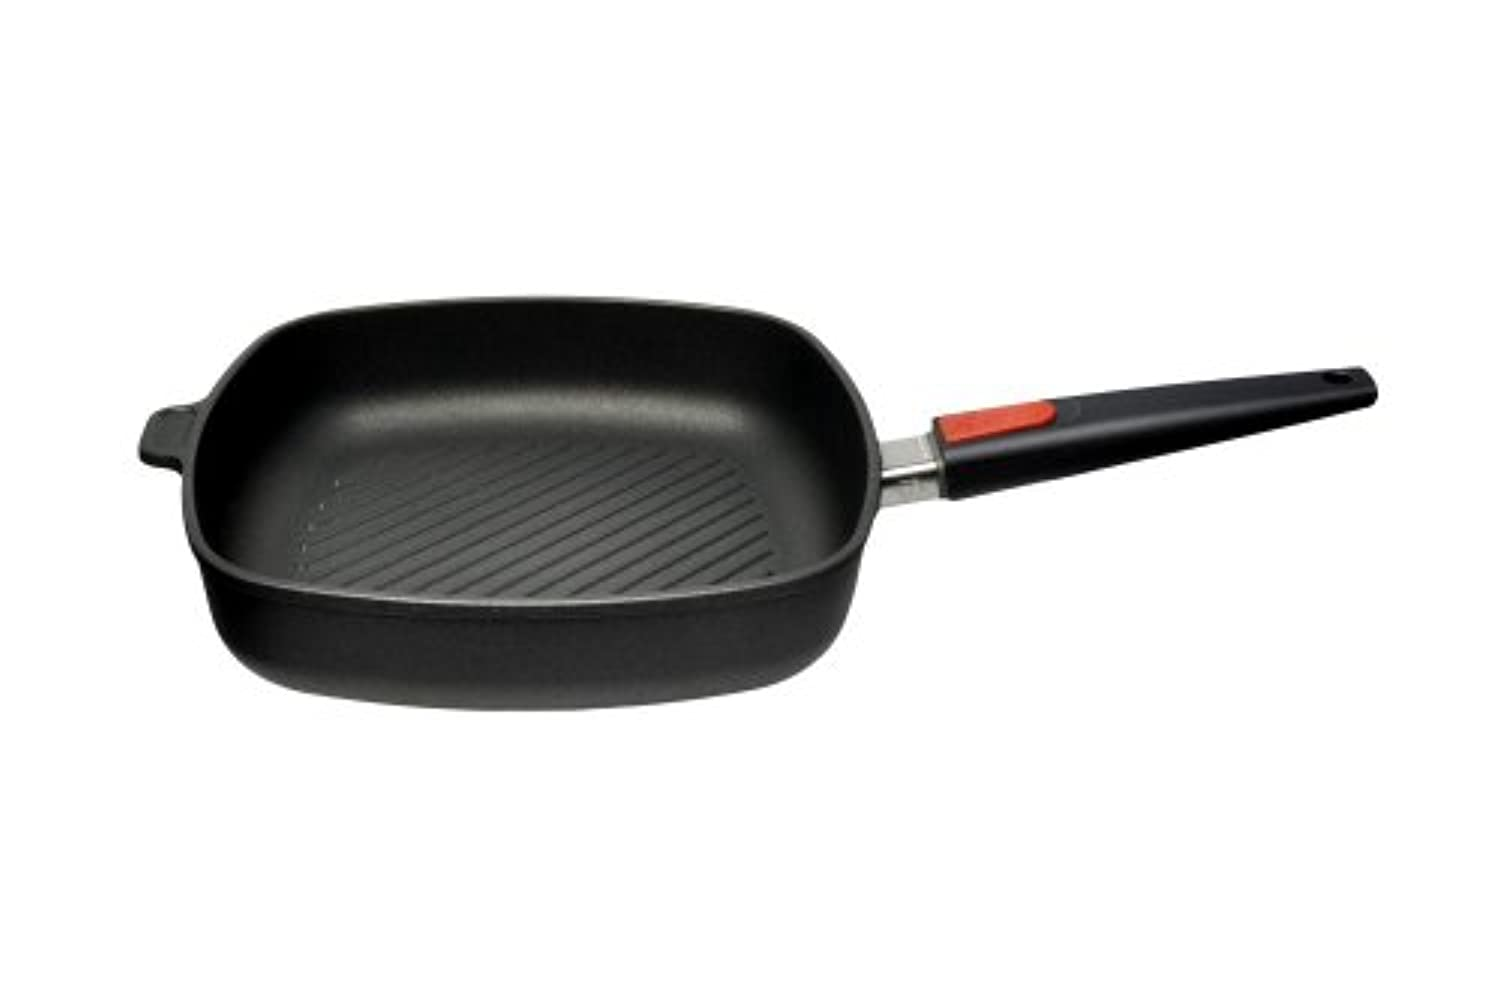 Woll Nowo Titanium 11 x 11 Grill Pan w/ Detachable Handle by Woll Cookware